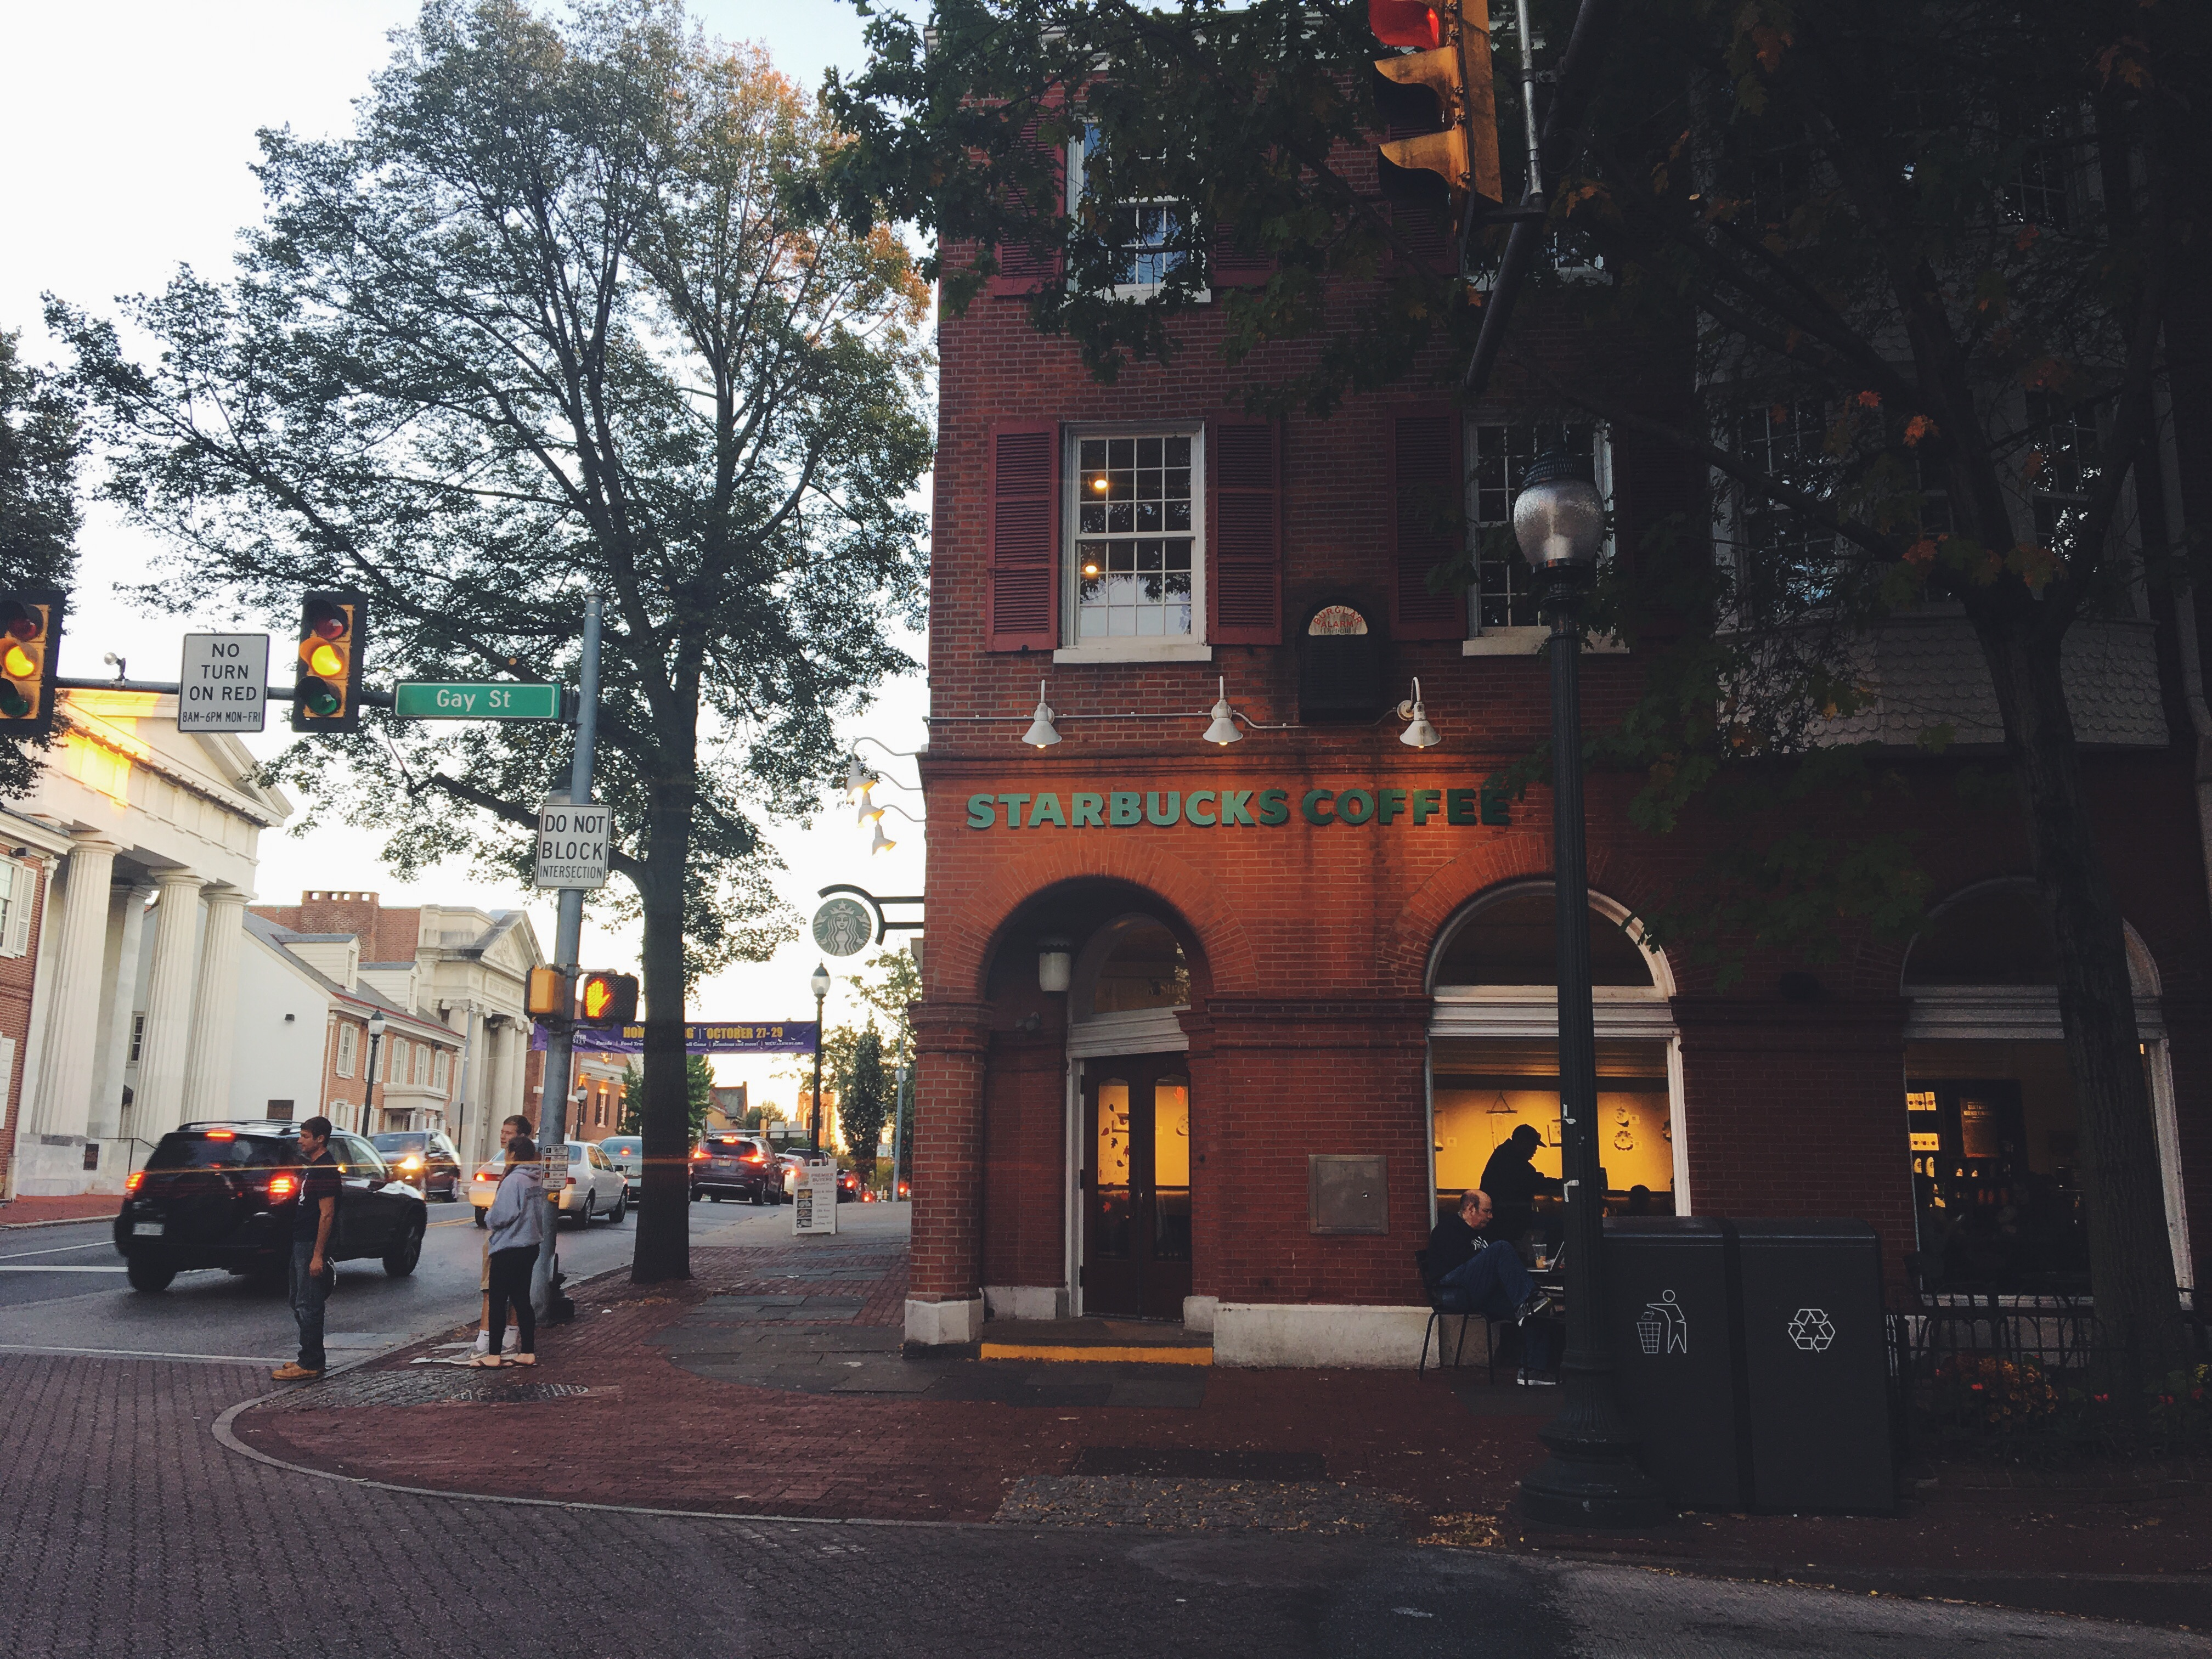 West Chester study spots: Starbucks located on the corner of Gay and High Streets